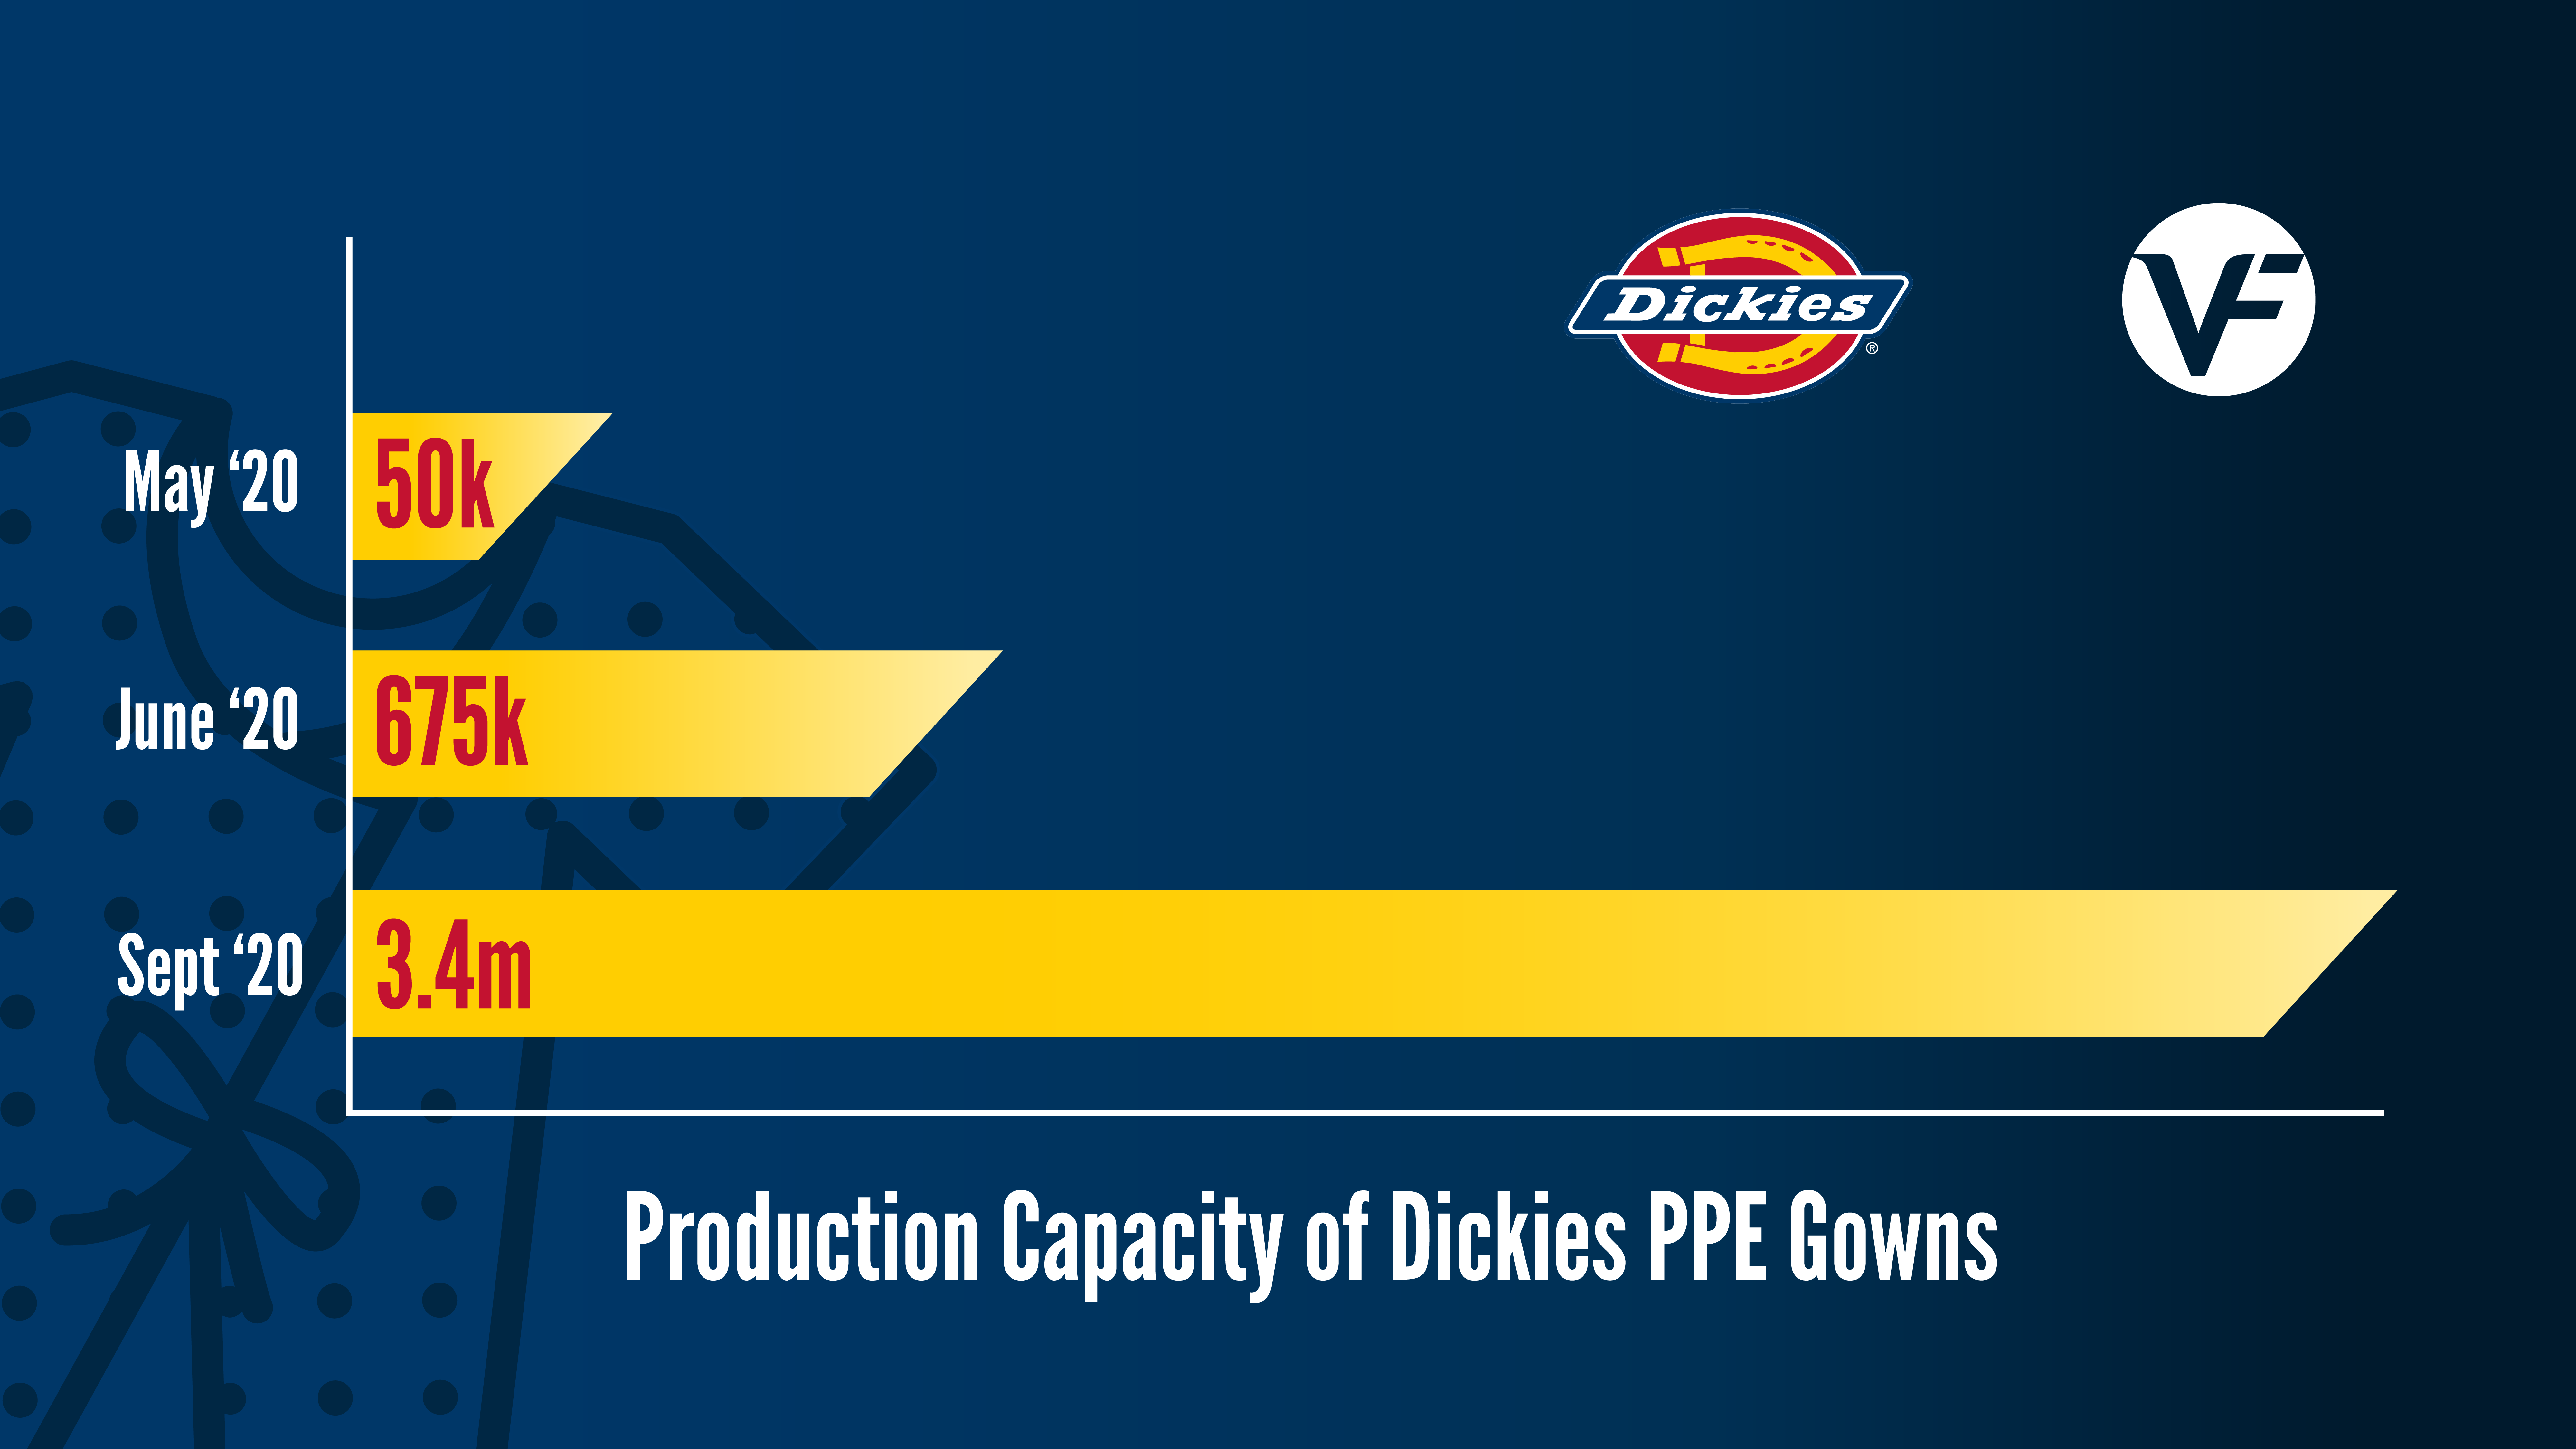 Graph of Dickies PPE gown production from May through September of 2020